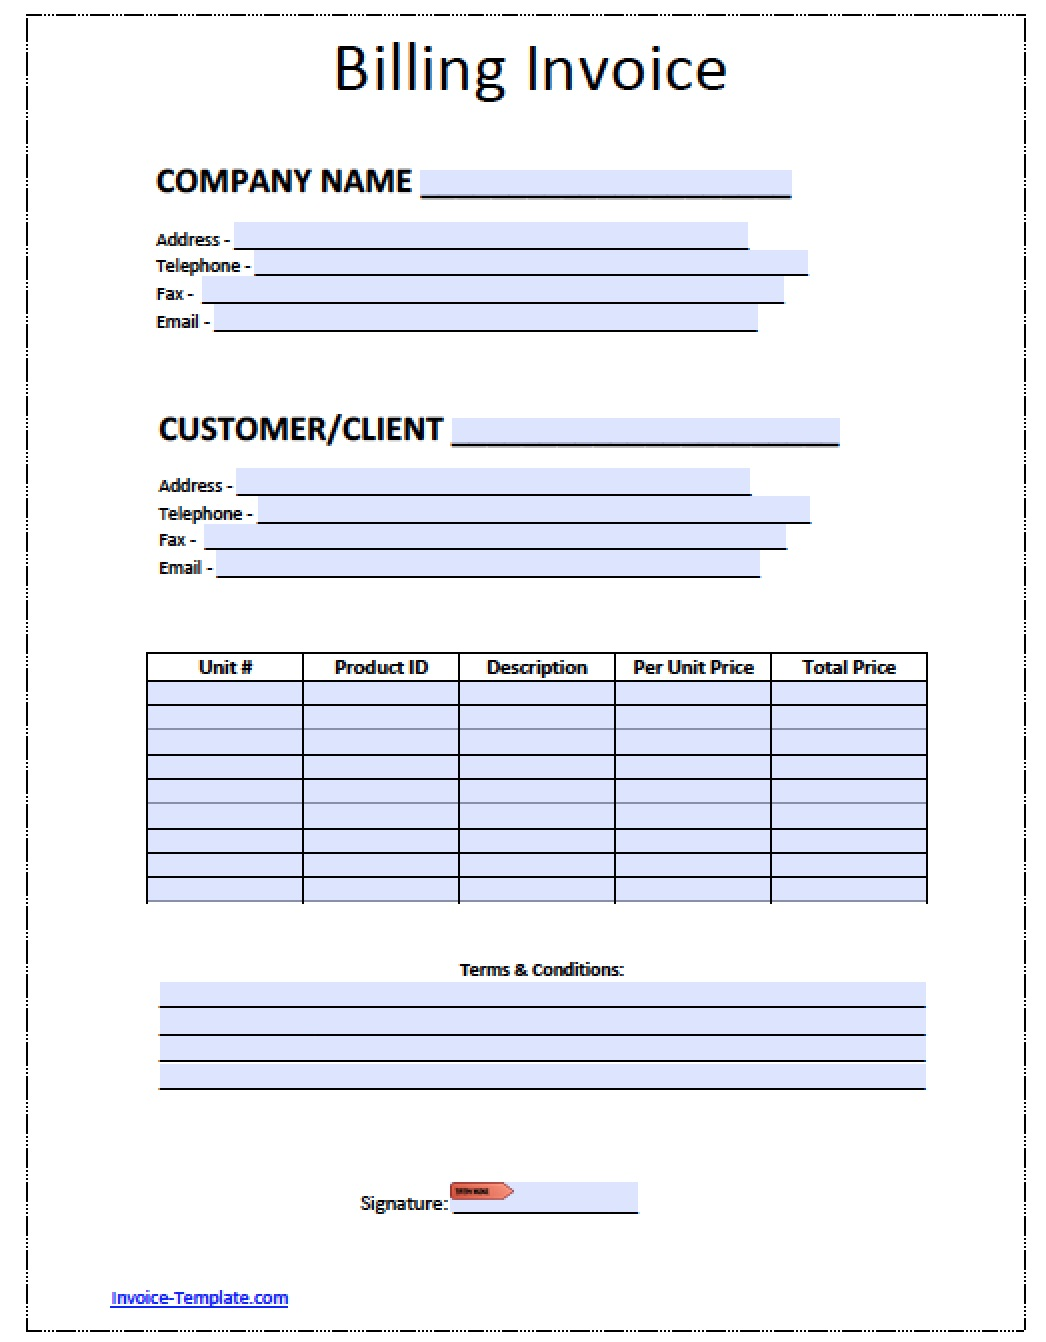 Shopdesignsus  Unique Billing Invoice Invoices Faq U Cloudflare Support Billing  With Luxury Free Billing Invoice Template  Excel  Pdf  Word Doc  Billing With Delightful Myob Invoicing Also Invoice And Proforma Invoice In Addition Invoice Example Excel And Microsoft Word Free Invoice Template As Well As Invoice Dashboard Additionally Against Proforma Invoice From Happytomco With Shopdesignsus  Luxury Billing Invoice Invoices Faq U Cloudflare Support Billing  With Delightful Free Billing Invoice Template  Excel  Pdf  Word Doc  Billing And Unique Myob Invoicing Also Invoice And Proforma Invoice In Addition Invoice Example Excel From Happytomco